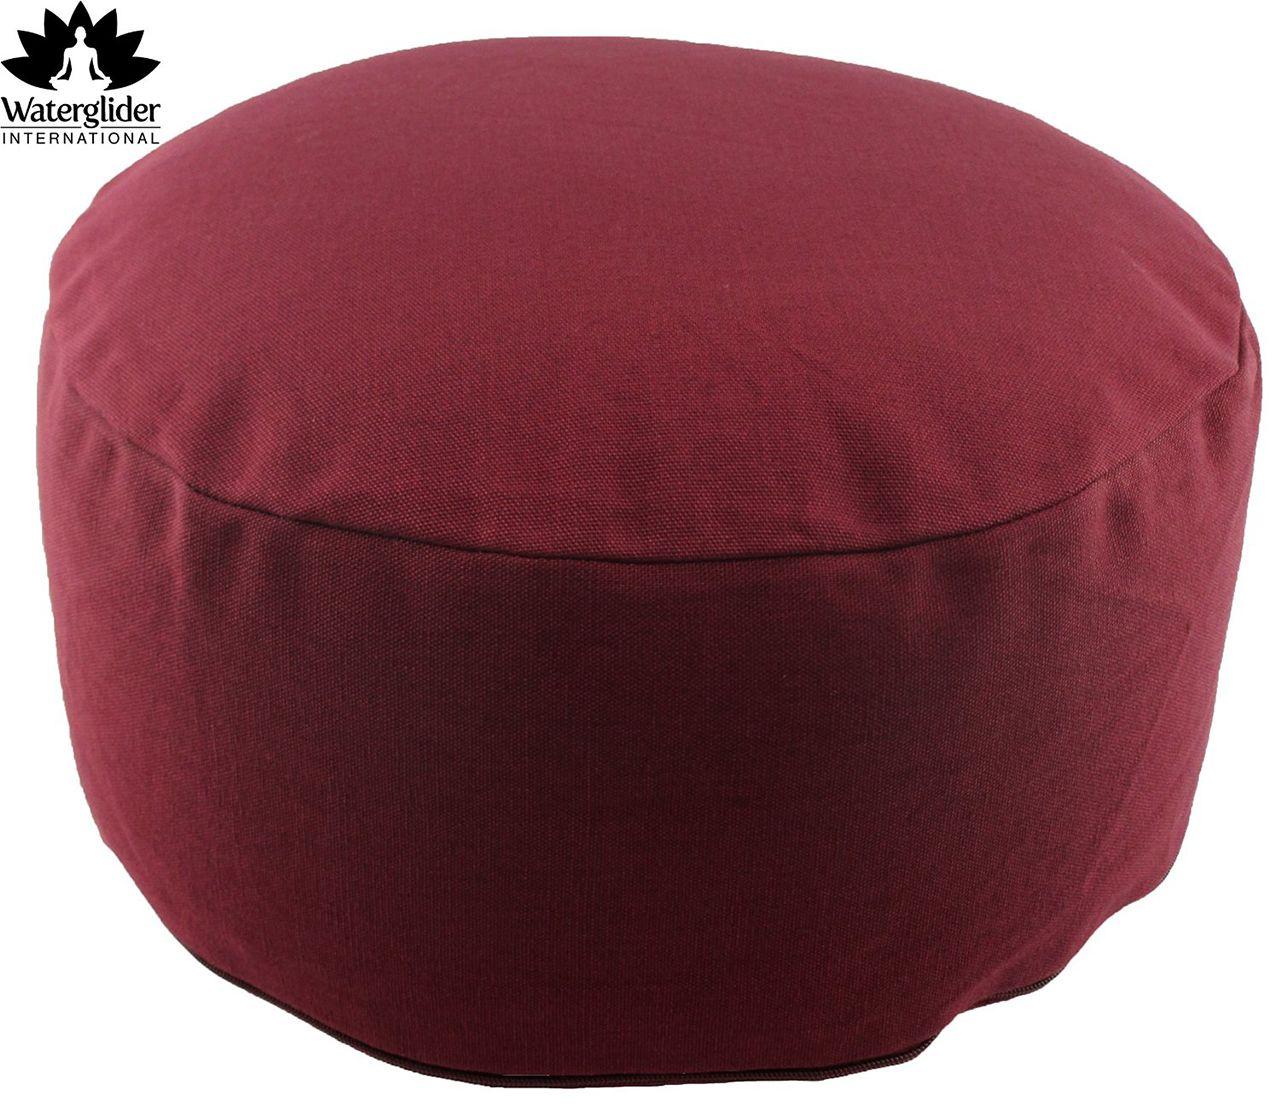 Affordable Meditation Cushions To Buy Right Now Meditation - Best meditation cushions to buy right now